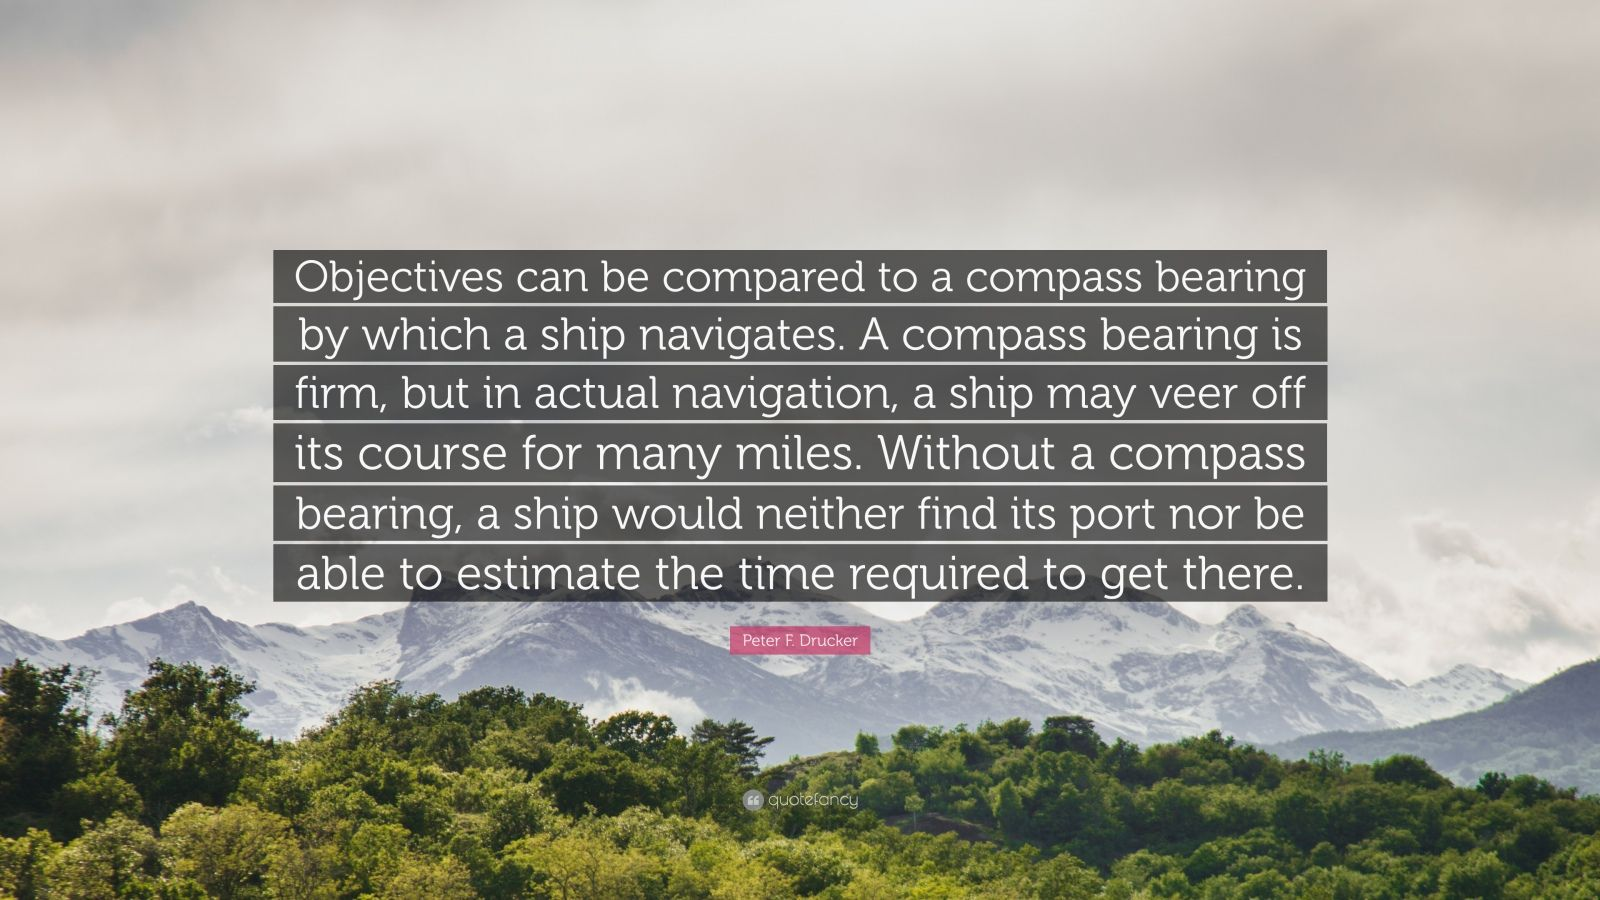 """Peter F. Drucker Quote: """"Objectives can be compared to a compass bearing by which a ship navigates. A compass bearing is firm, but in actual navigation, a ship may veer off its course for many miles. Without a compass bearing, a ship would neither find its port nor be able to estimate the time required to get there."""""""